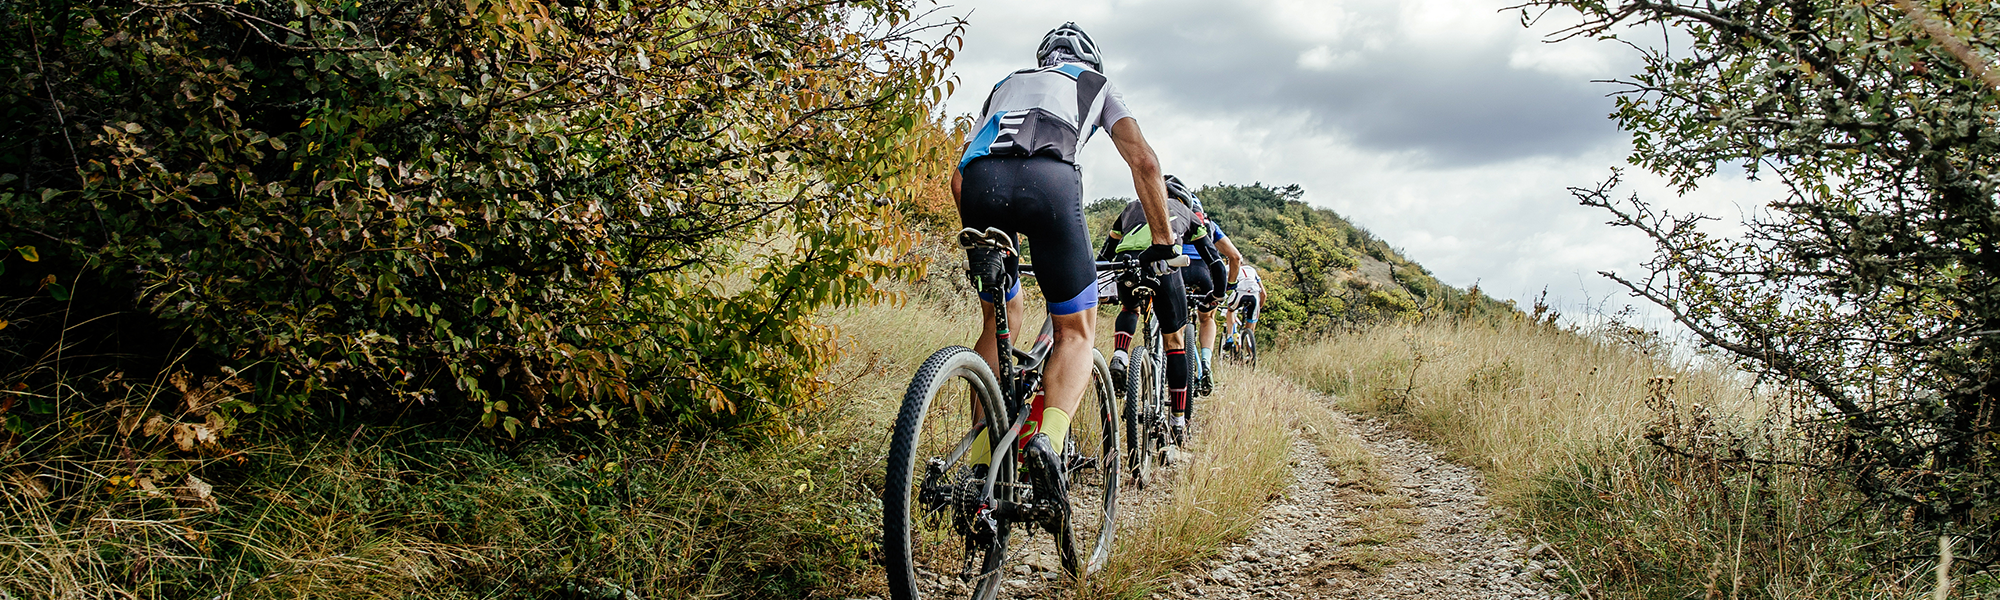 Line of Mountain Bikers Ascending a Trail